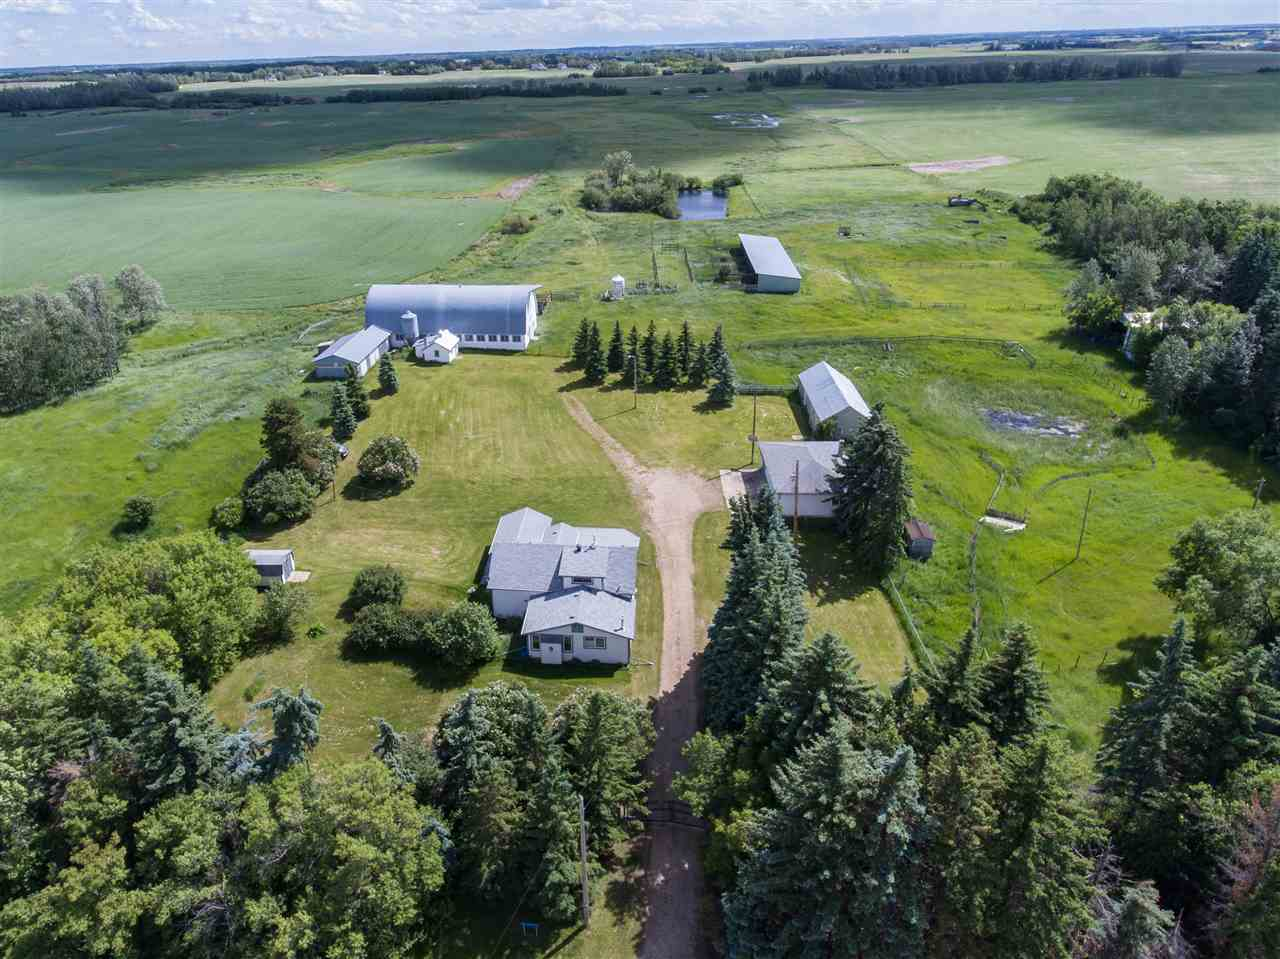 Main Photo: 24035 TWP 510: Rural Leduc County House for sale : MLS(r) # E4070589